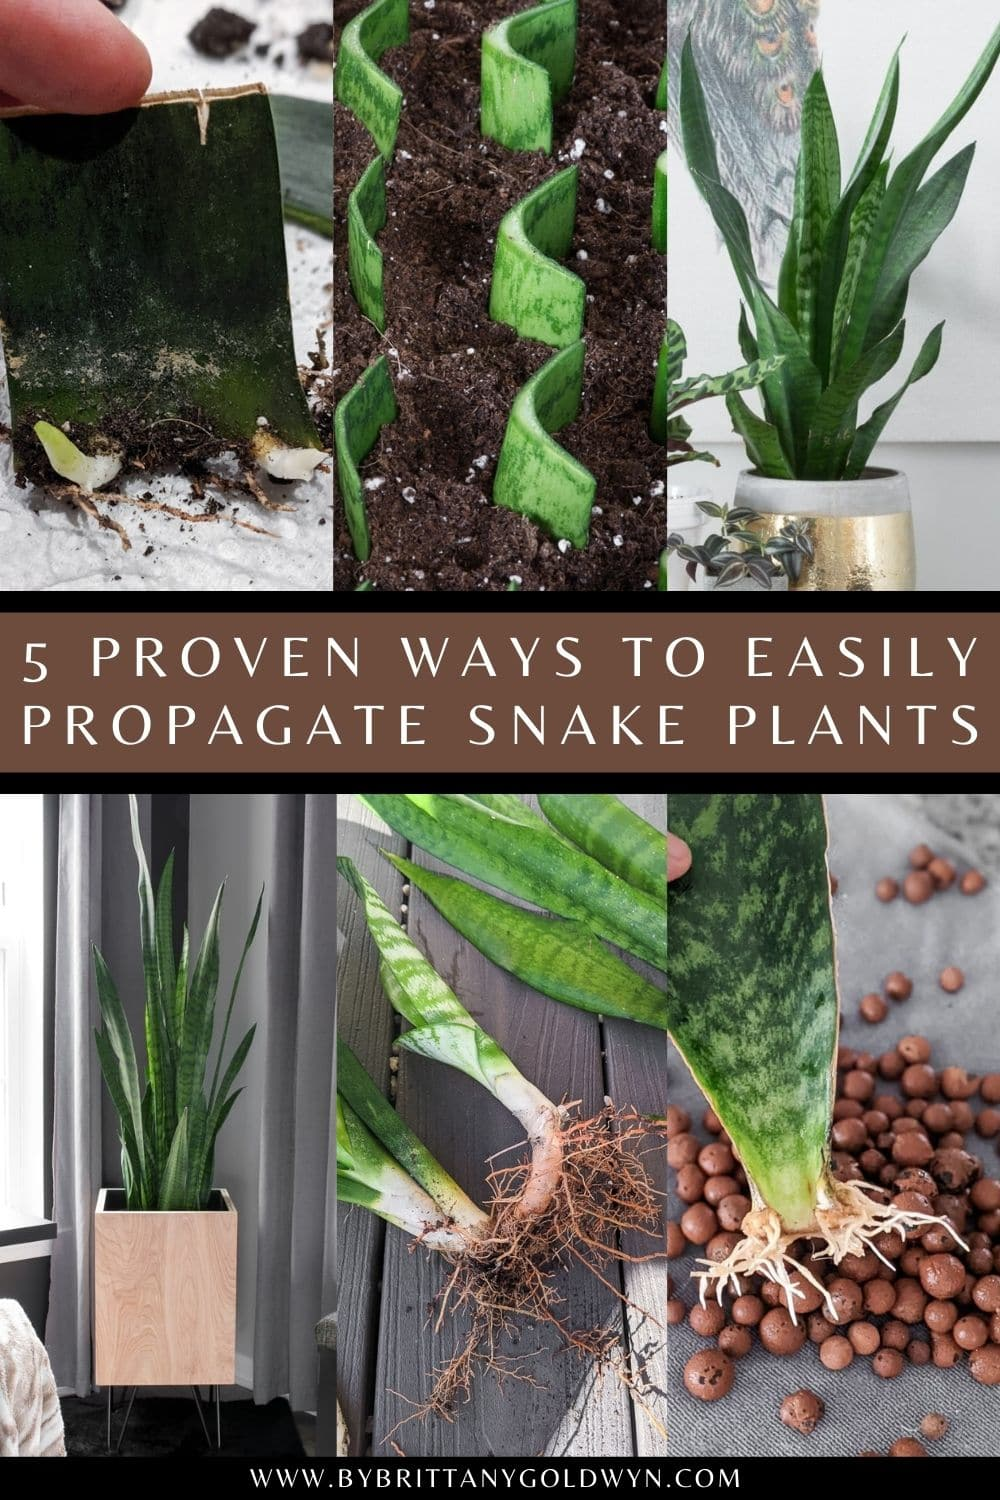 image collage of propagating snake plants with text about ways to propagate snake plants